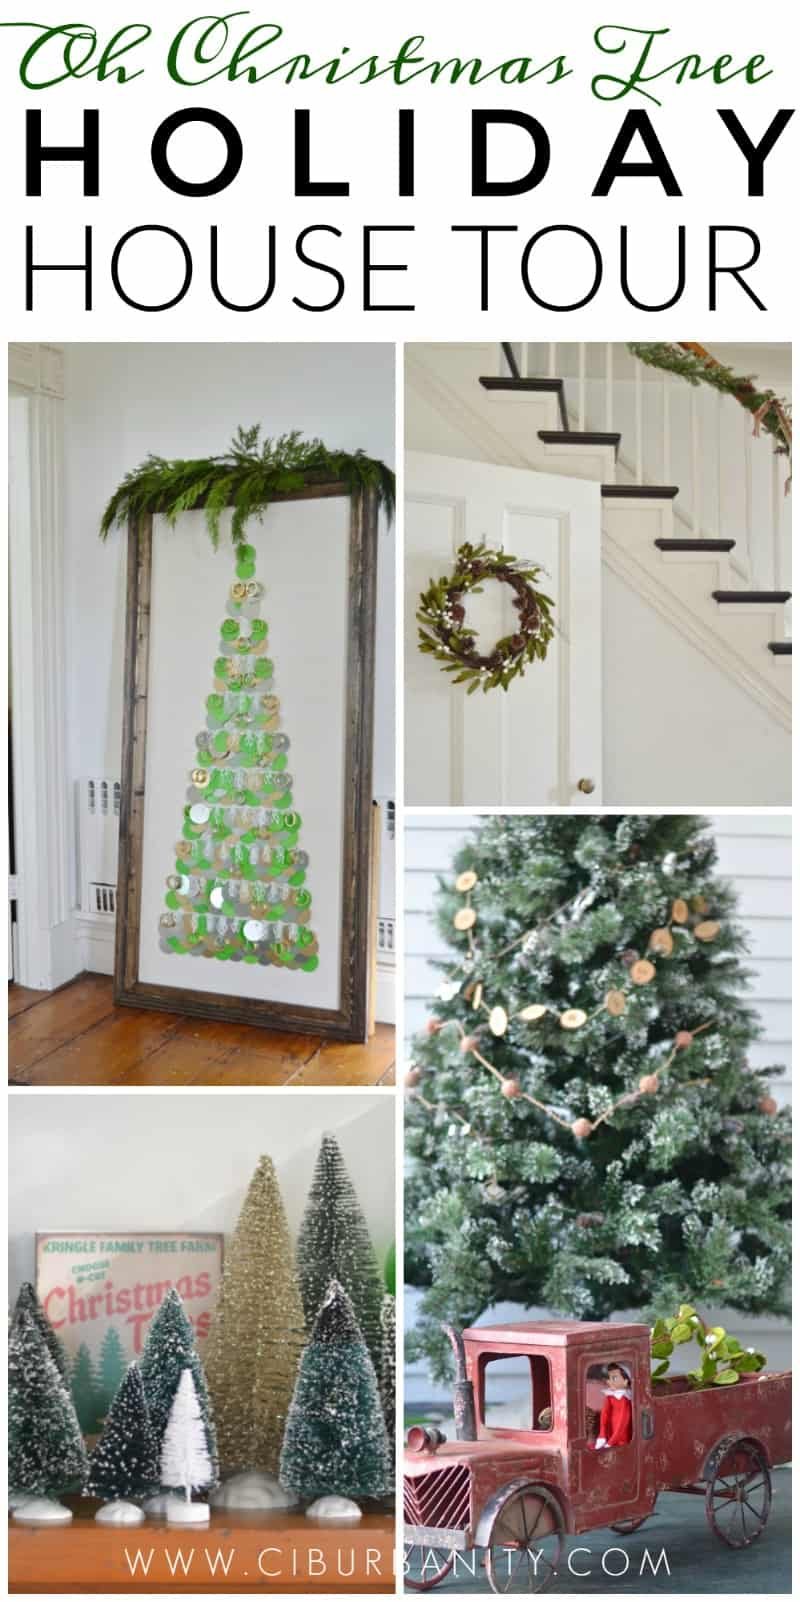 This year I used what I loved for our holiday decor: Christmas trees!